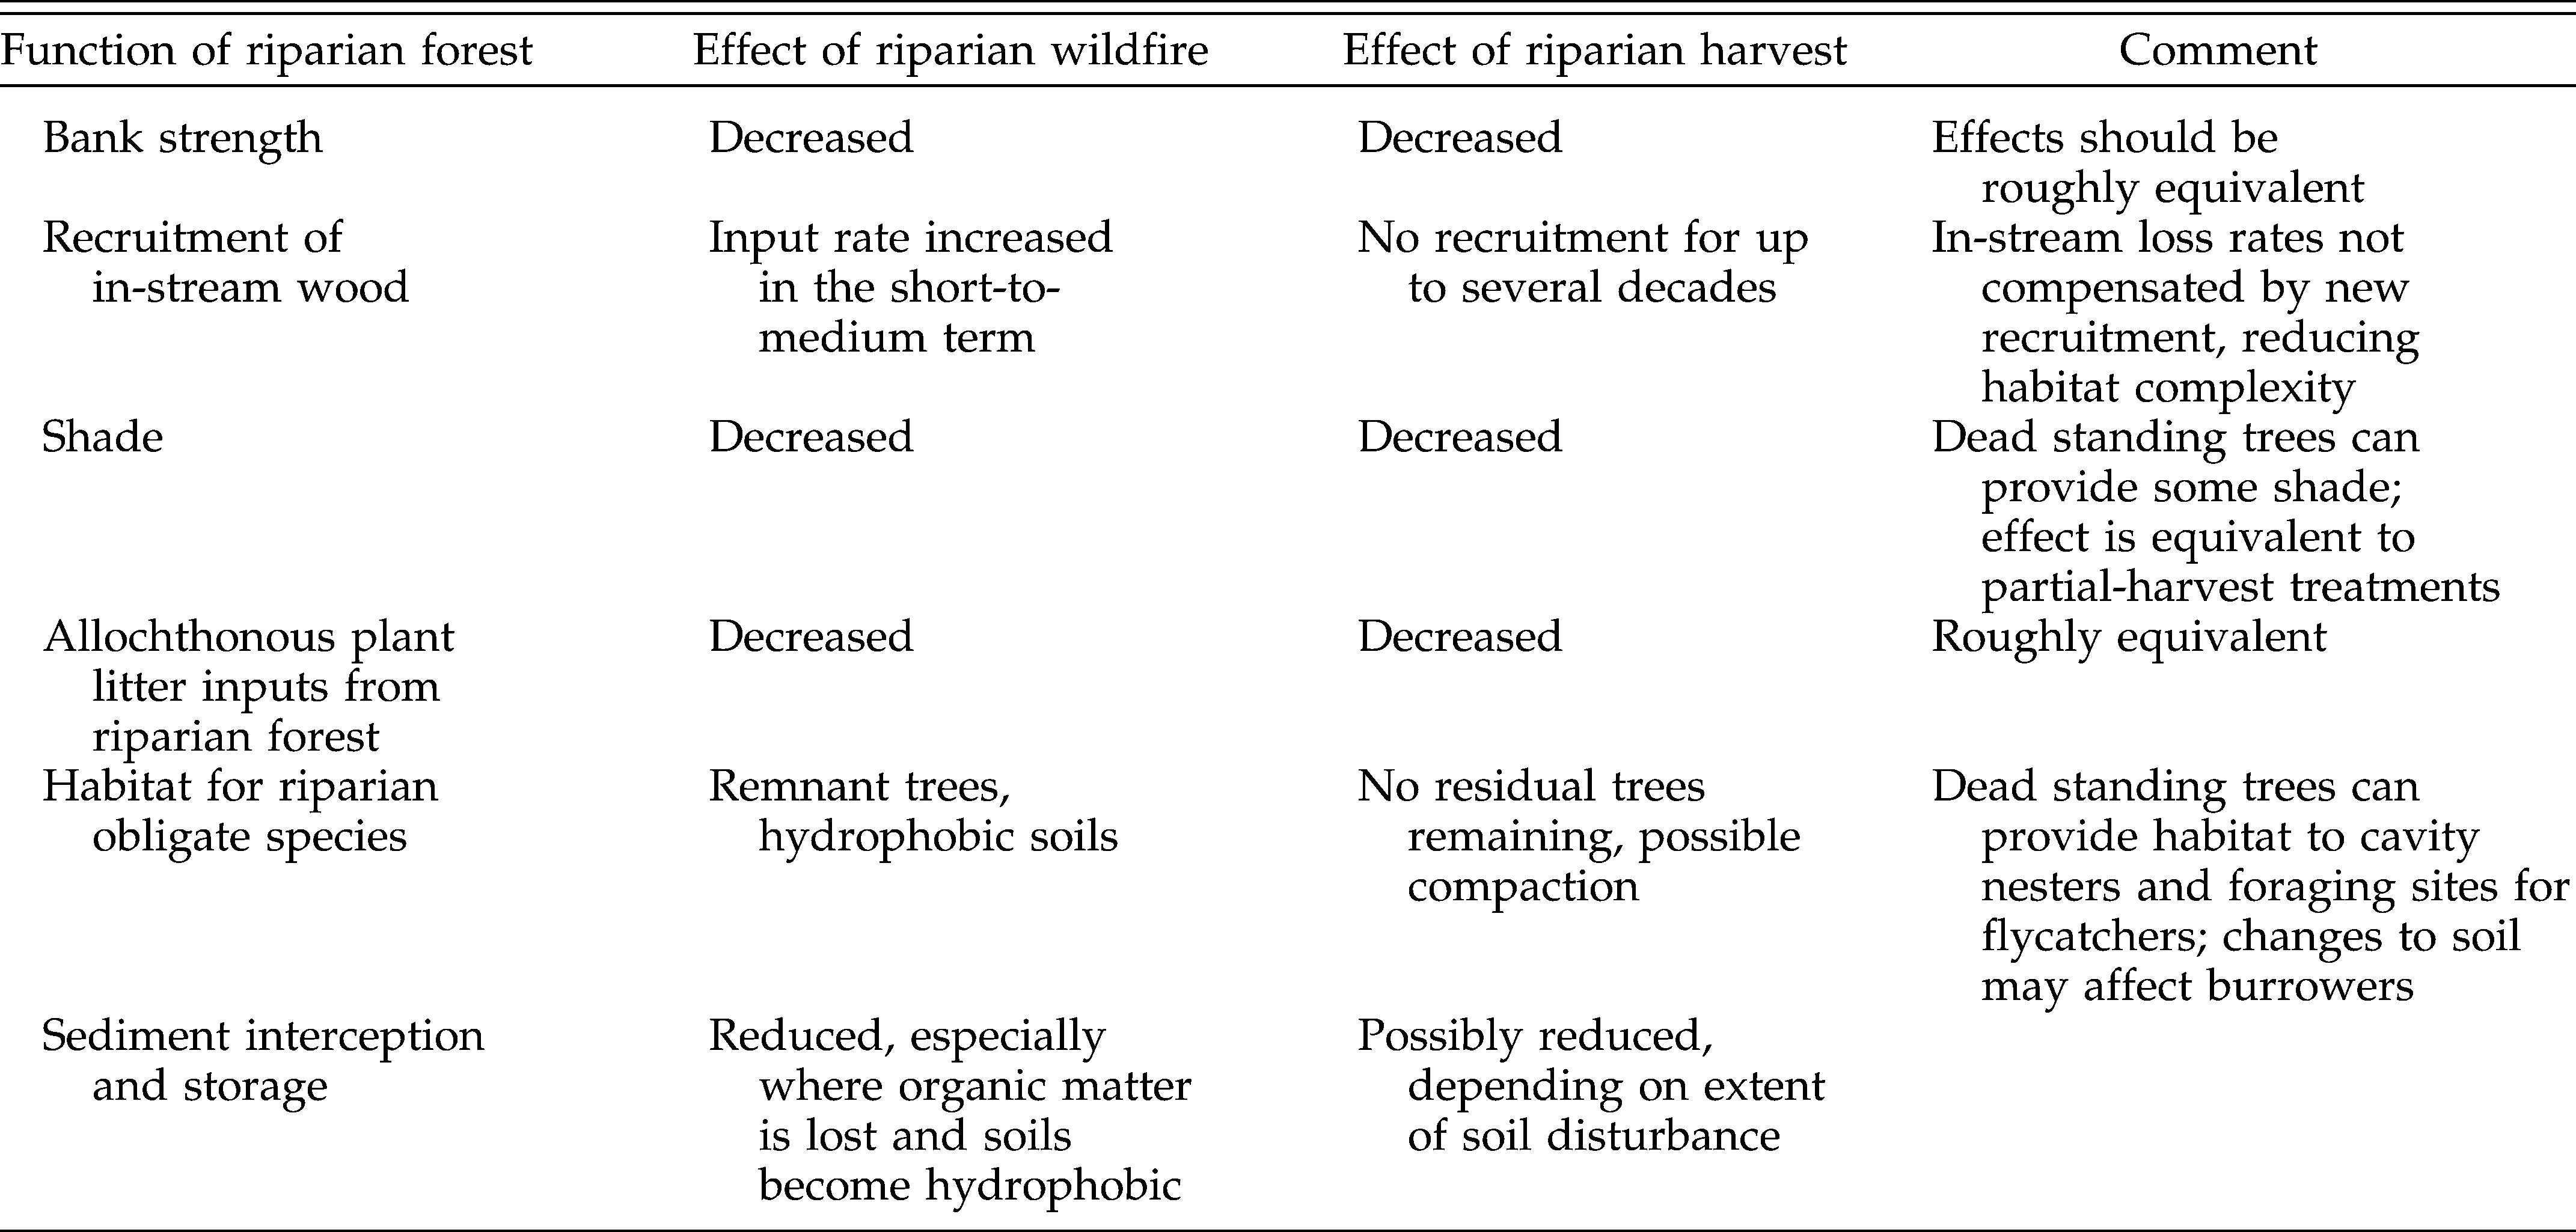 Natural disturbance and forest management in riparian zones